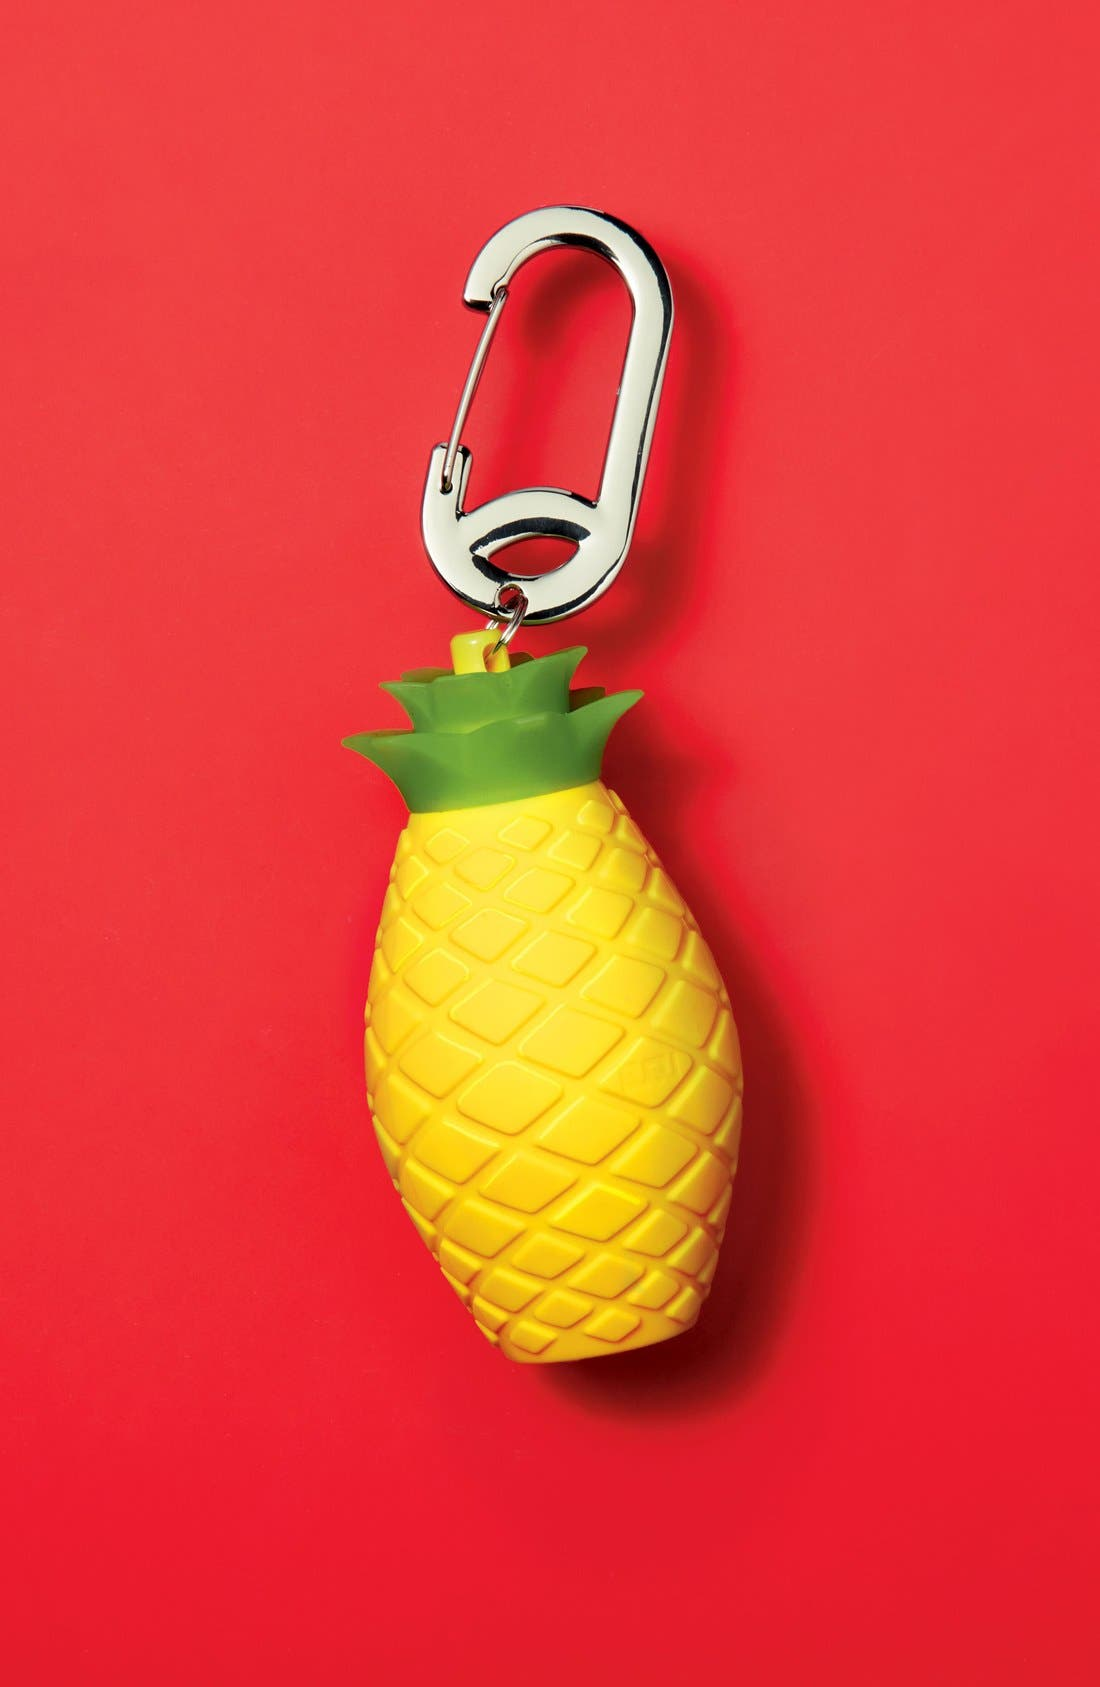 Alternate Image 2  - Buqu Tech 'Pina' Pineapple Shaped USB Power Bank